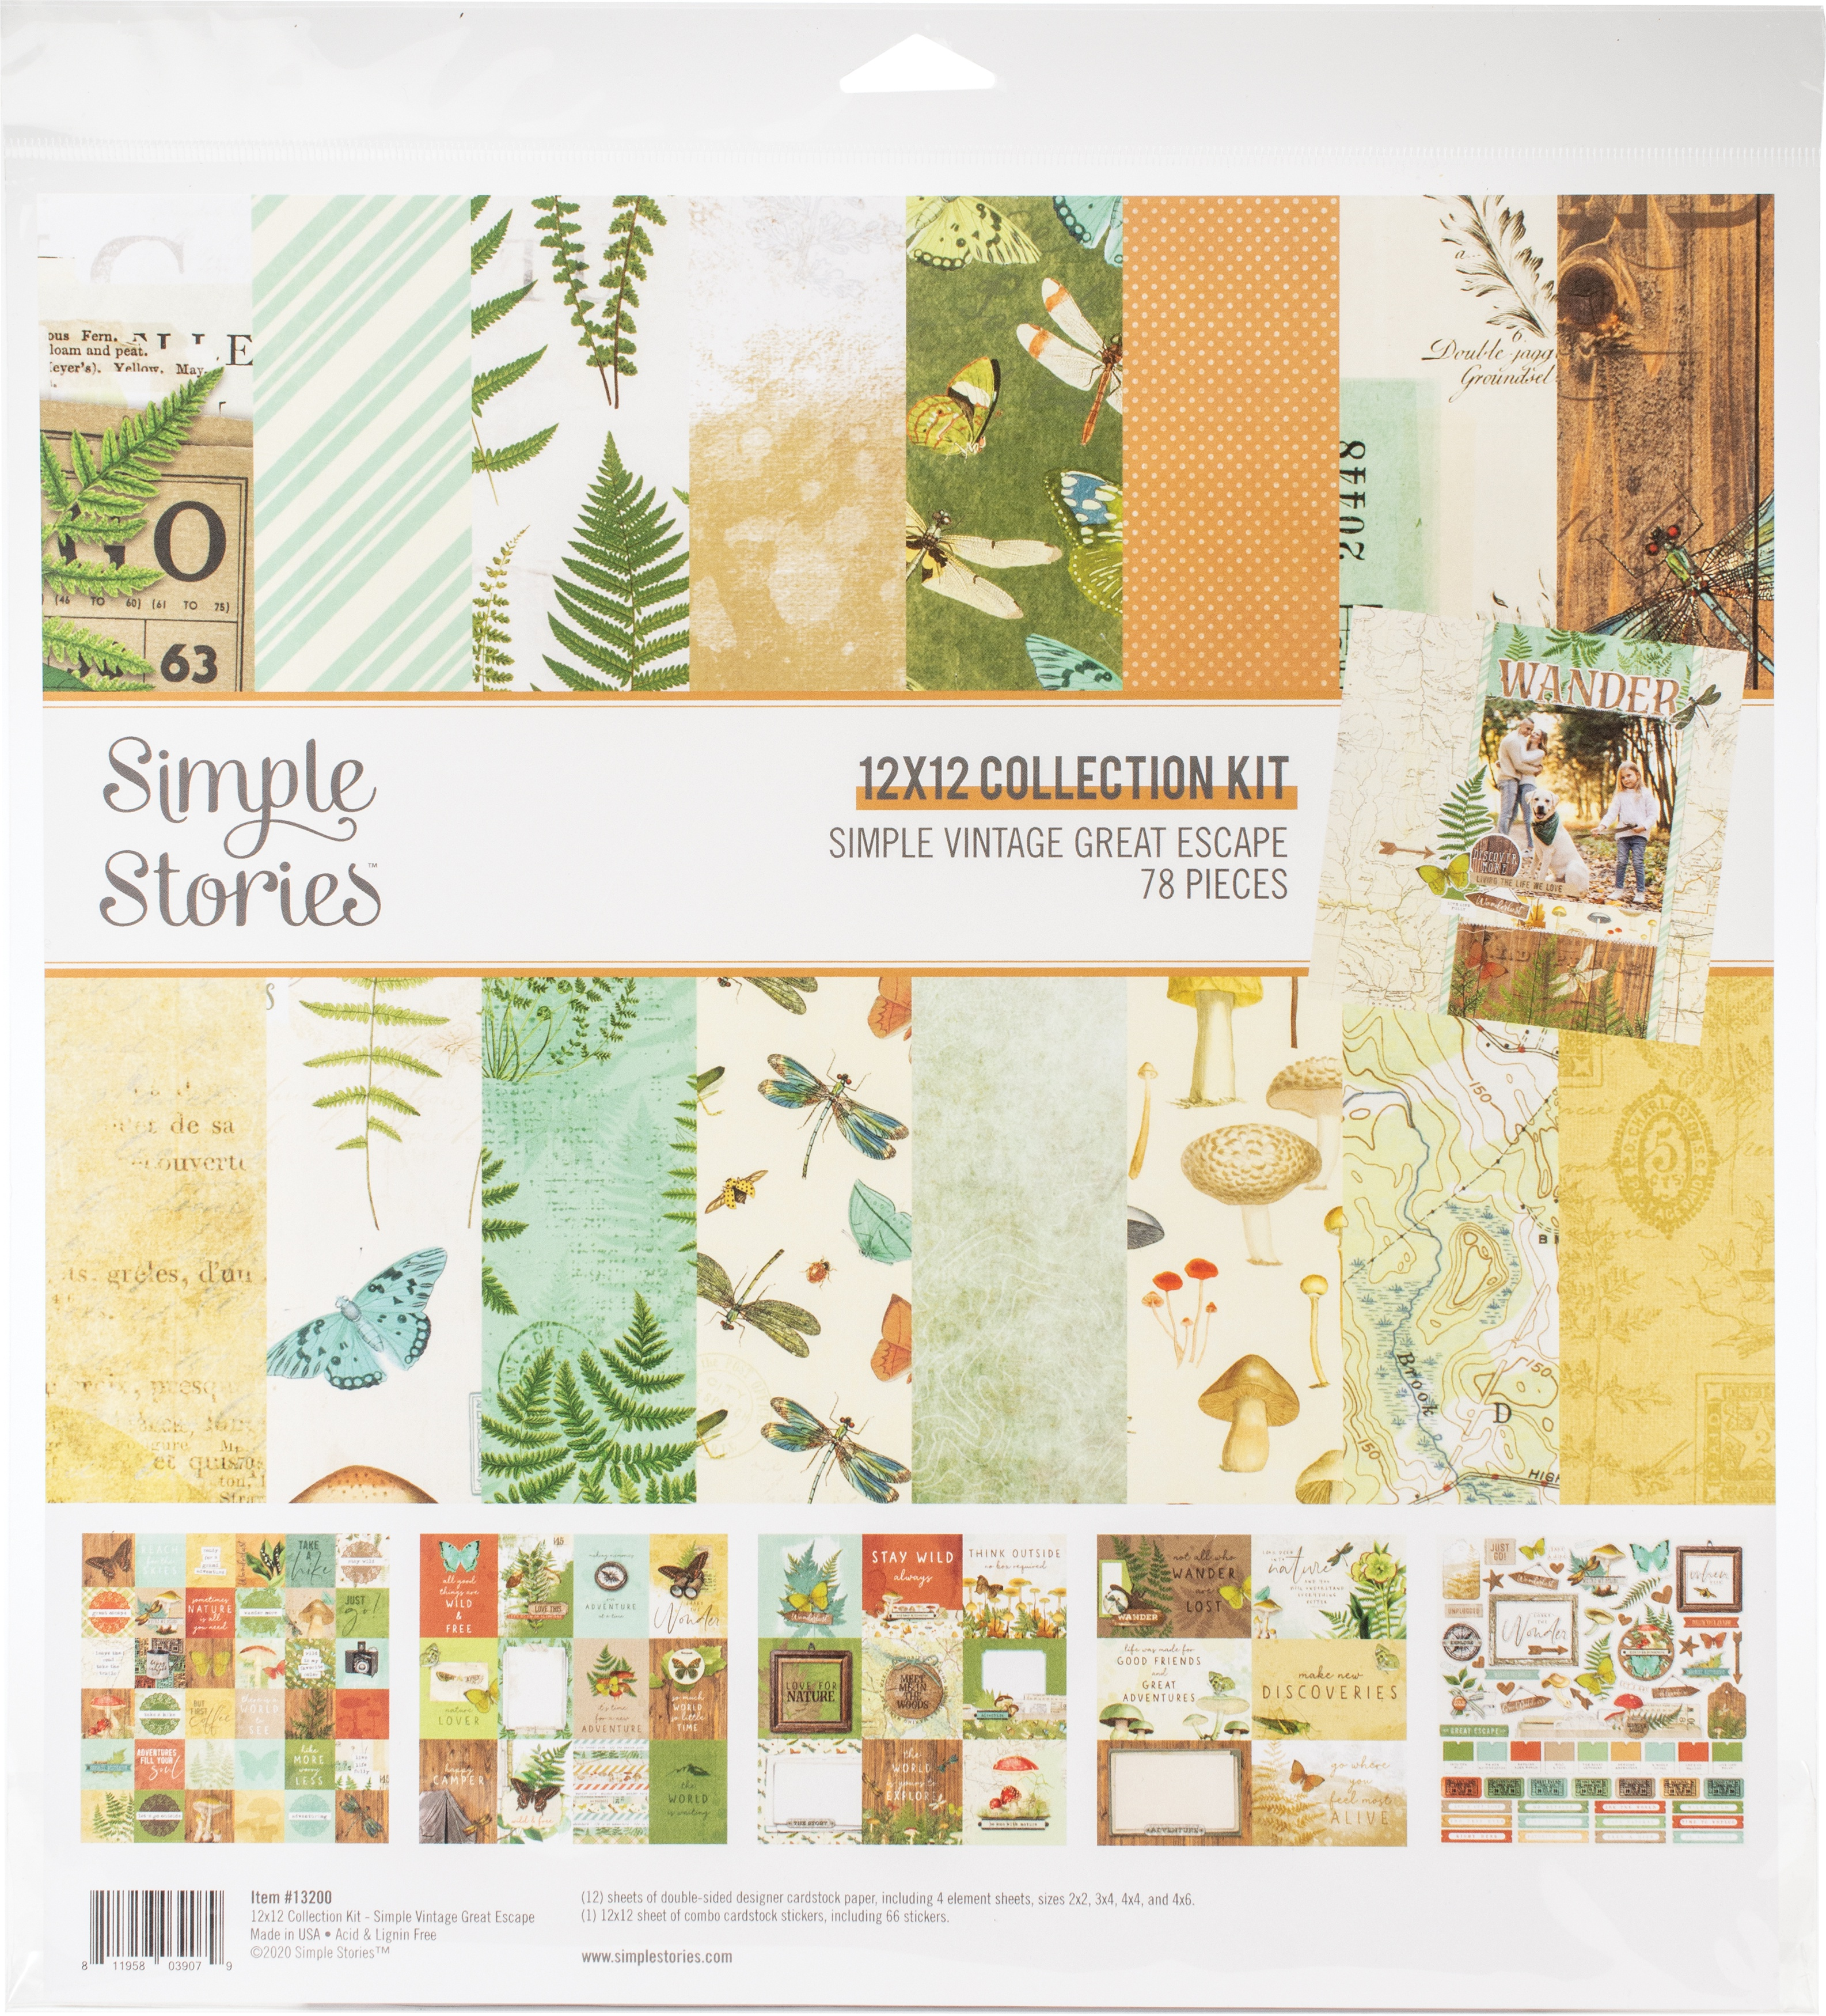 Simple Vintage Great Escape Collection Kit